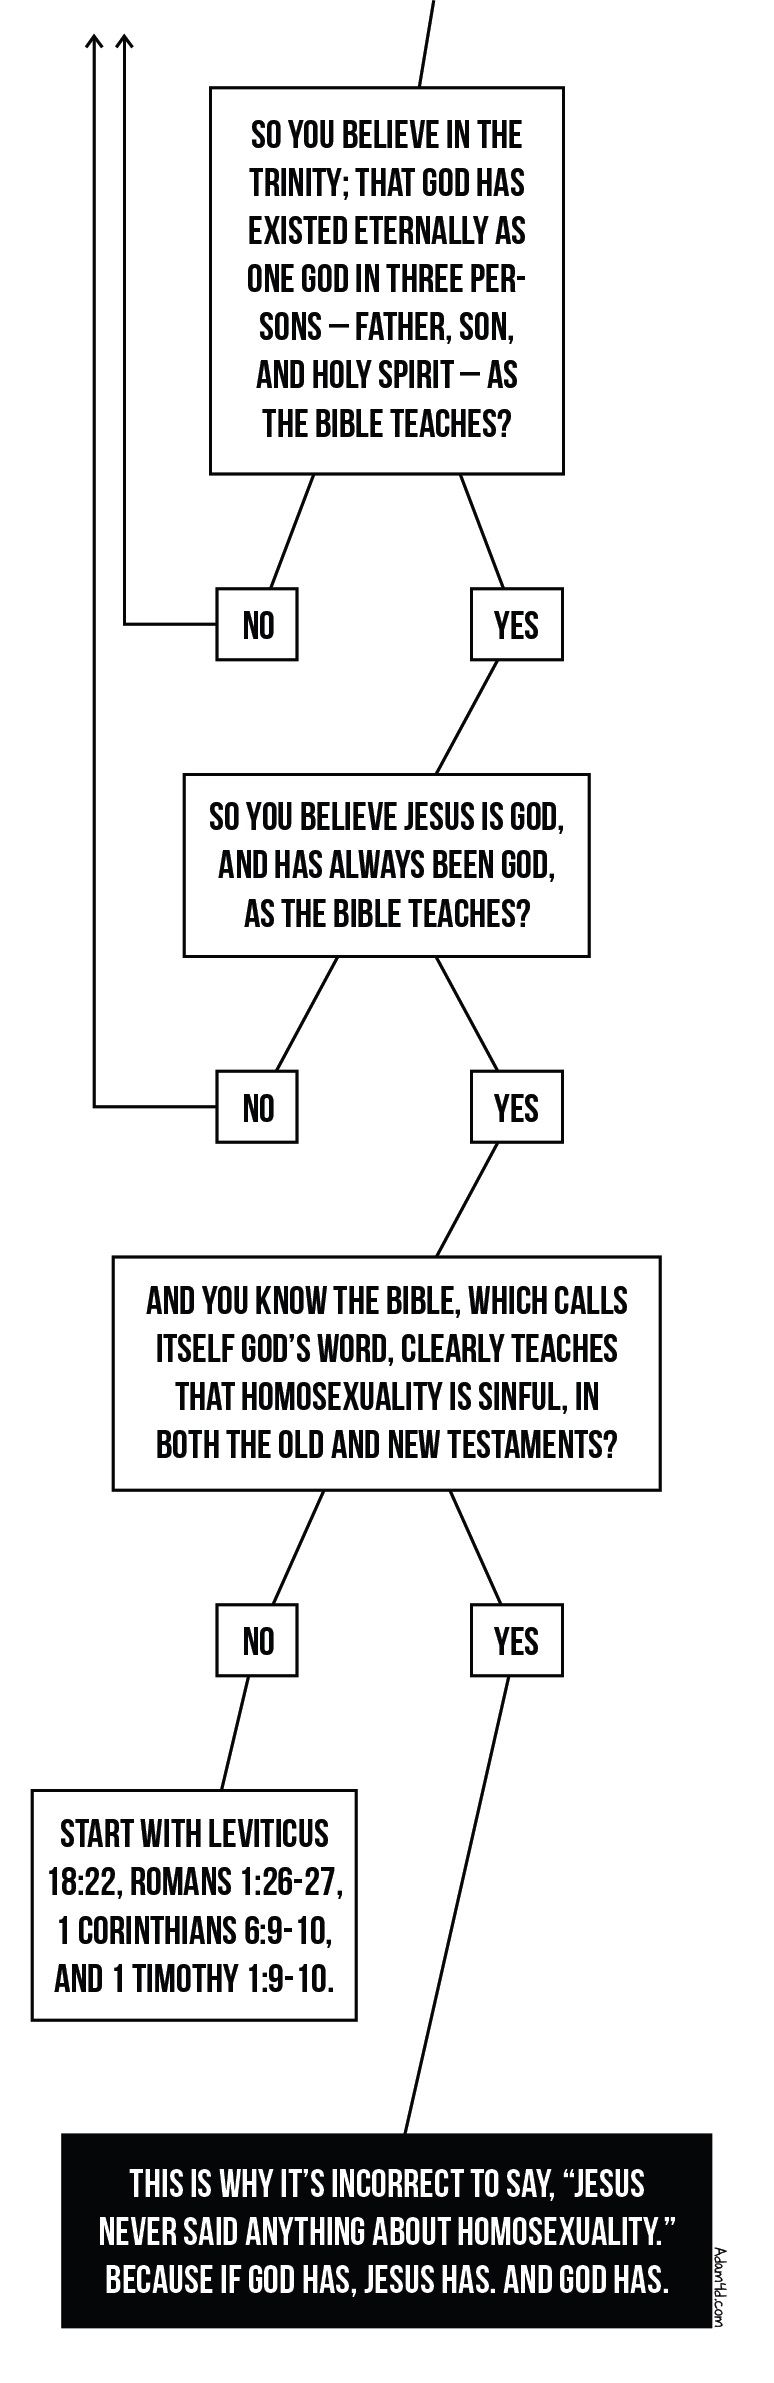 Does the new testament ban homosexuality